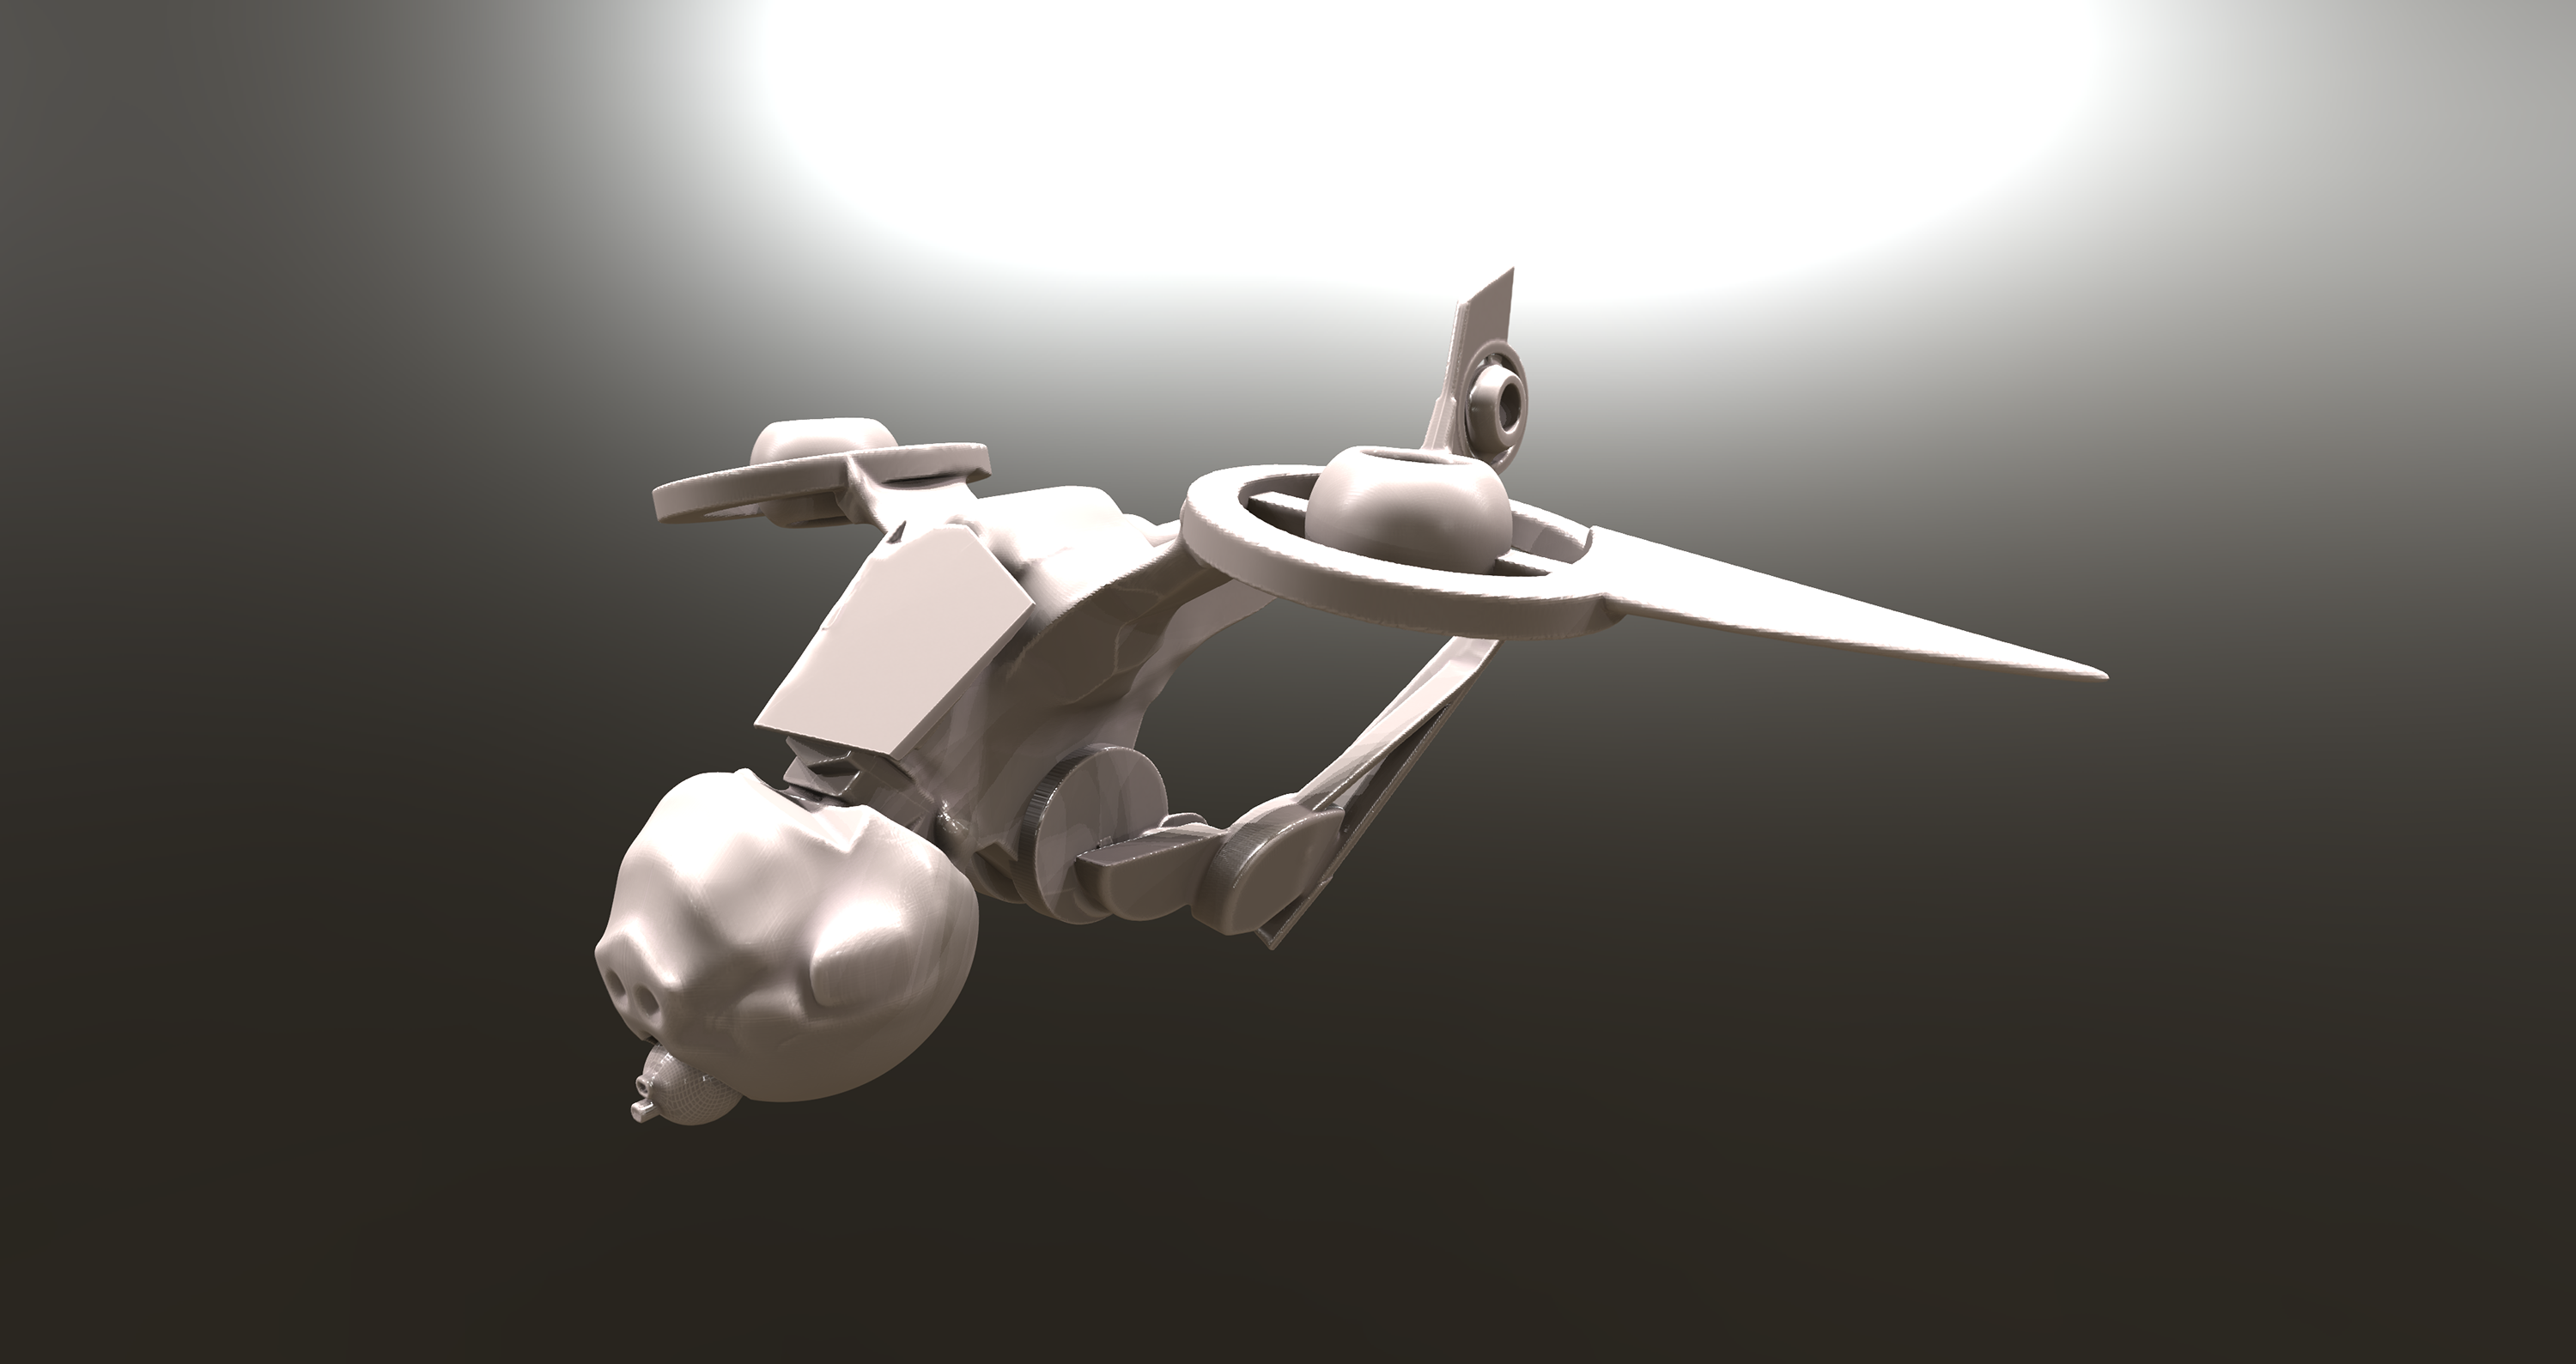 Drone wip 3.png